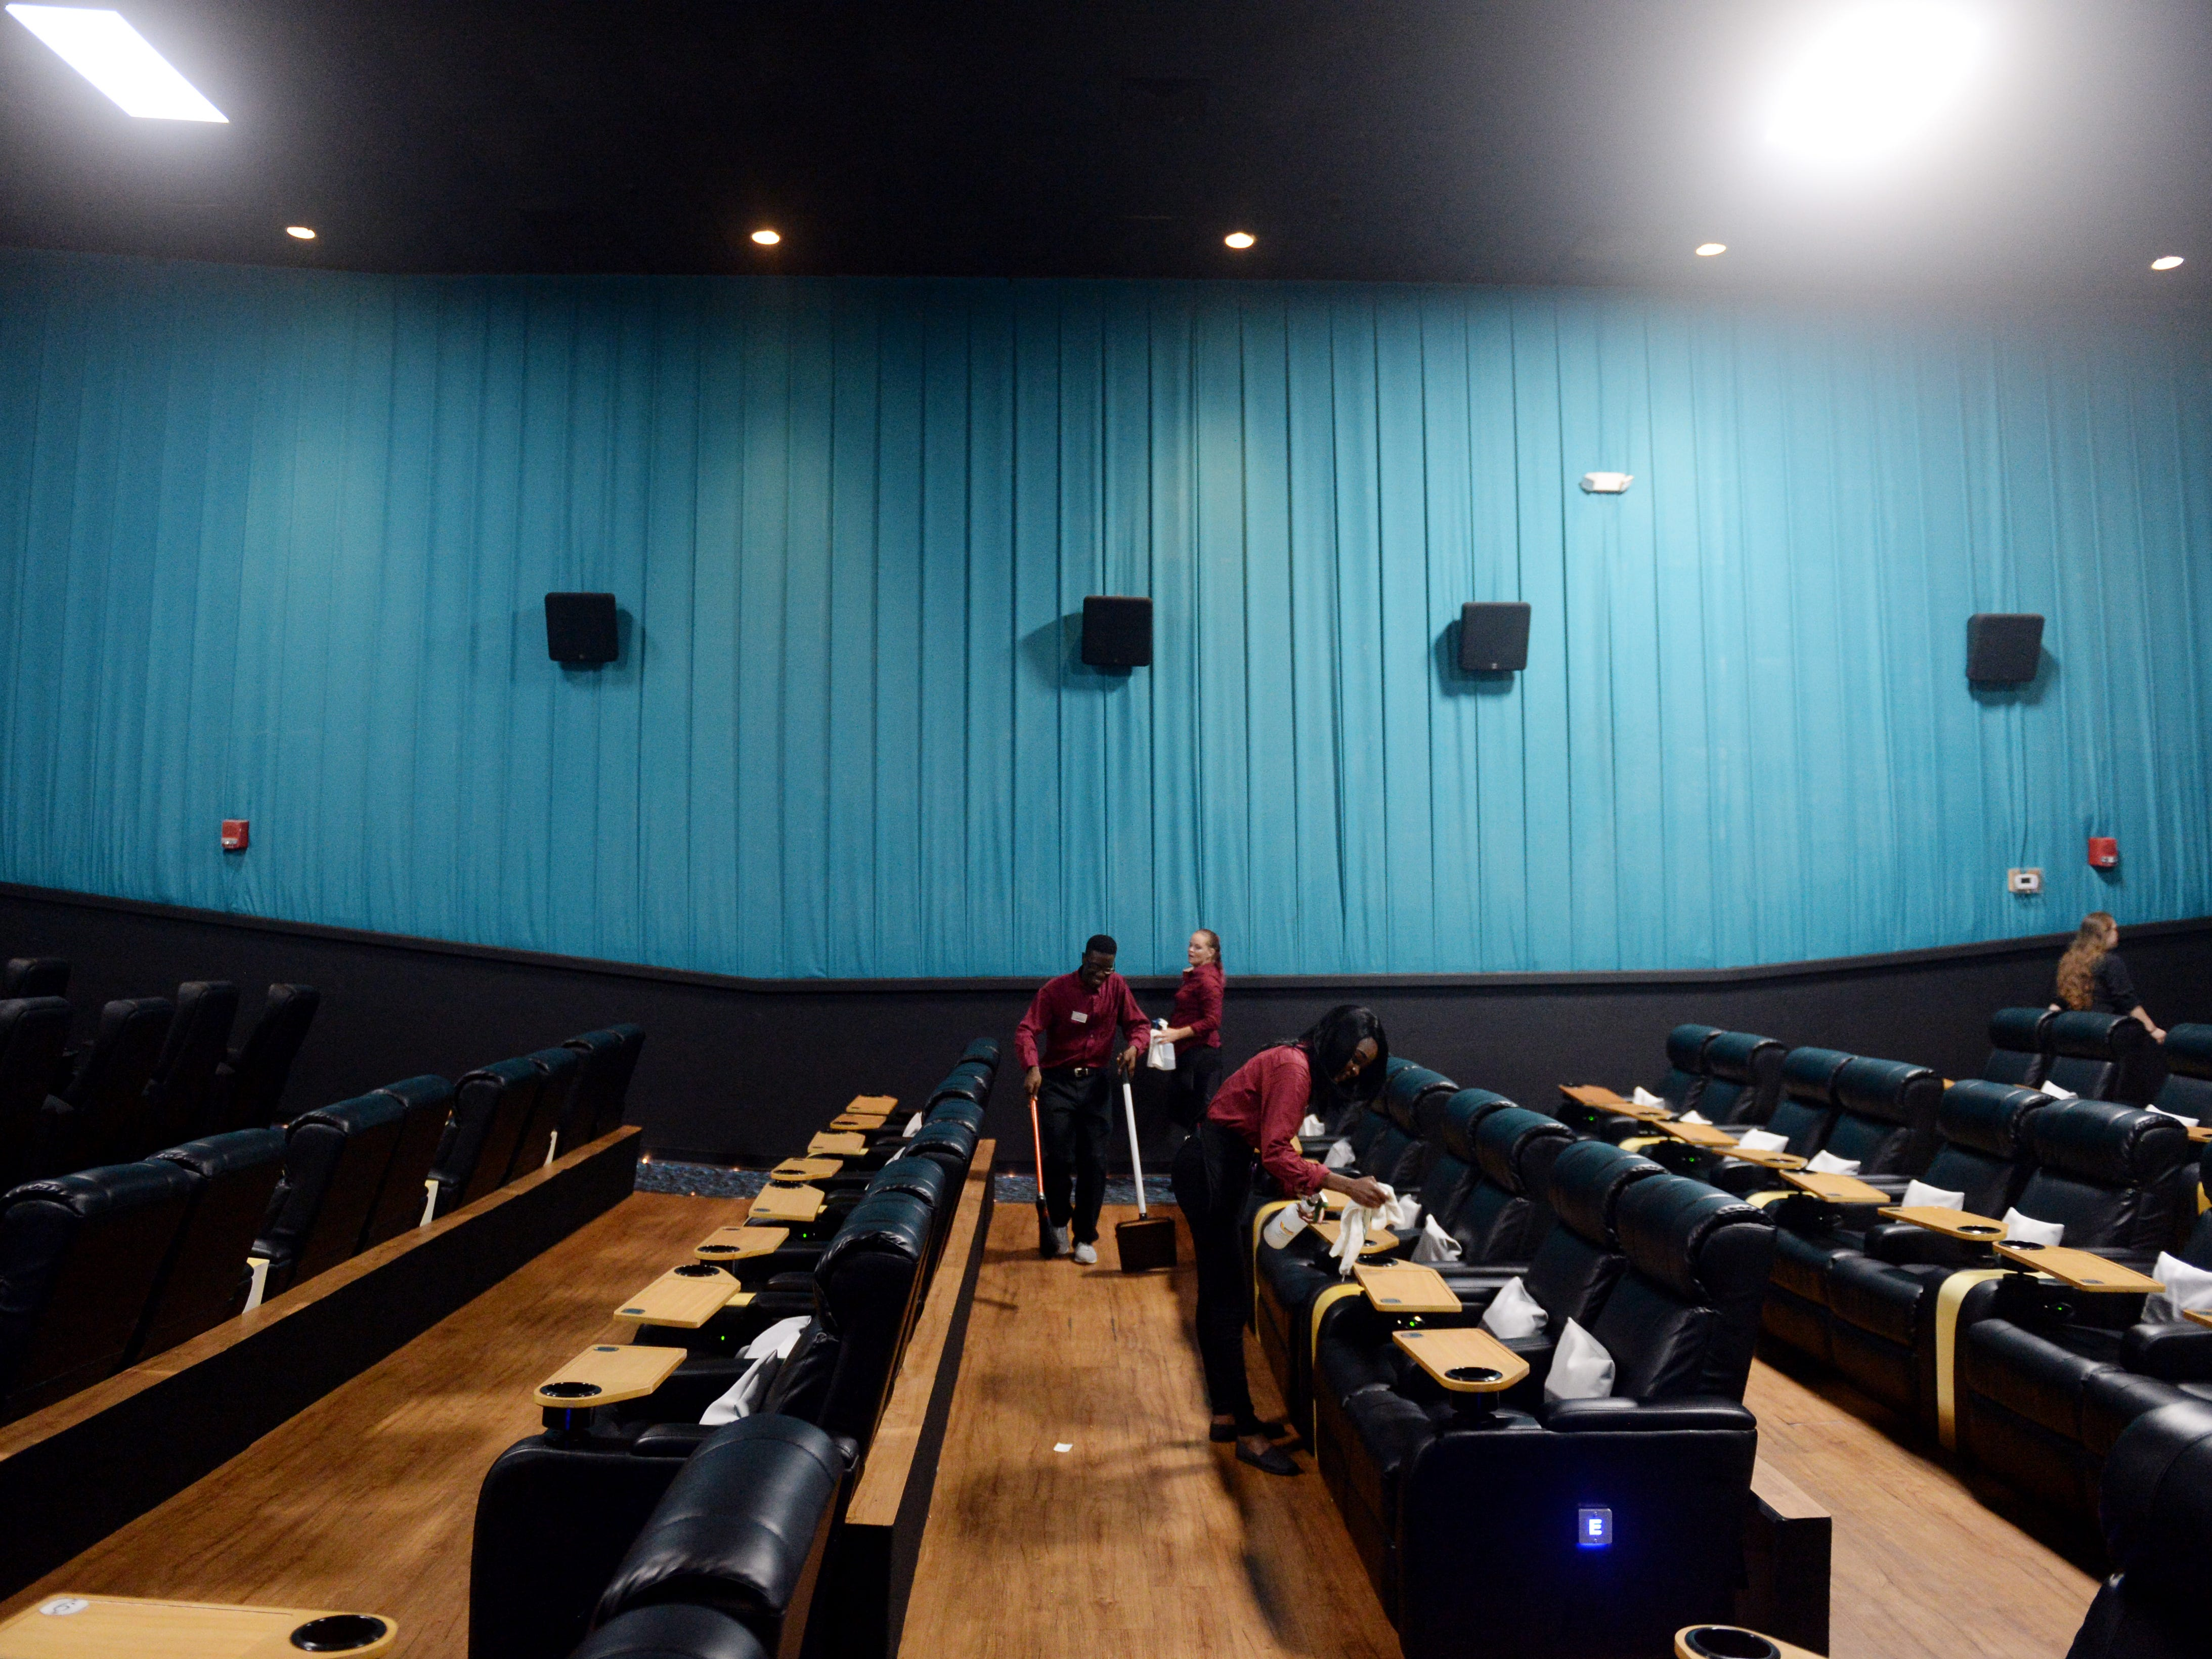 Added amenities like reclining seats, food options beyond candy and popcorn and a full bar sets Touchstar Cinemas Sabal Palms Luxury 6 in Fort Pierce apart from other Treasure Coast theaters. Employees will even deliver your food and drinks straight to your chair.